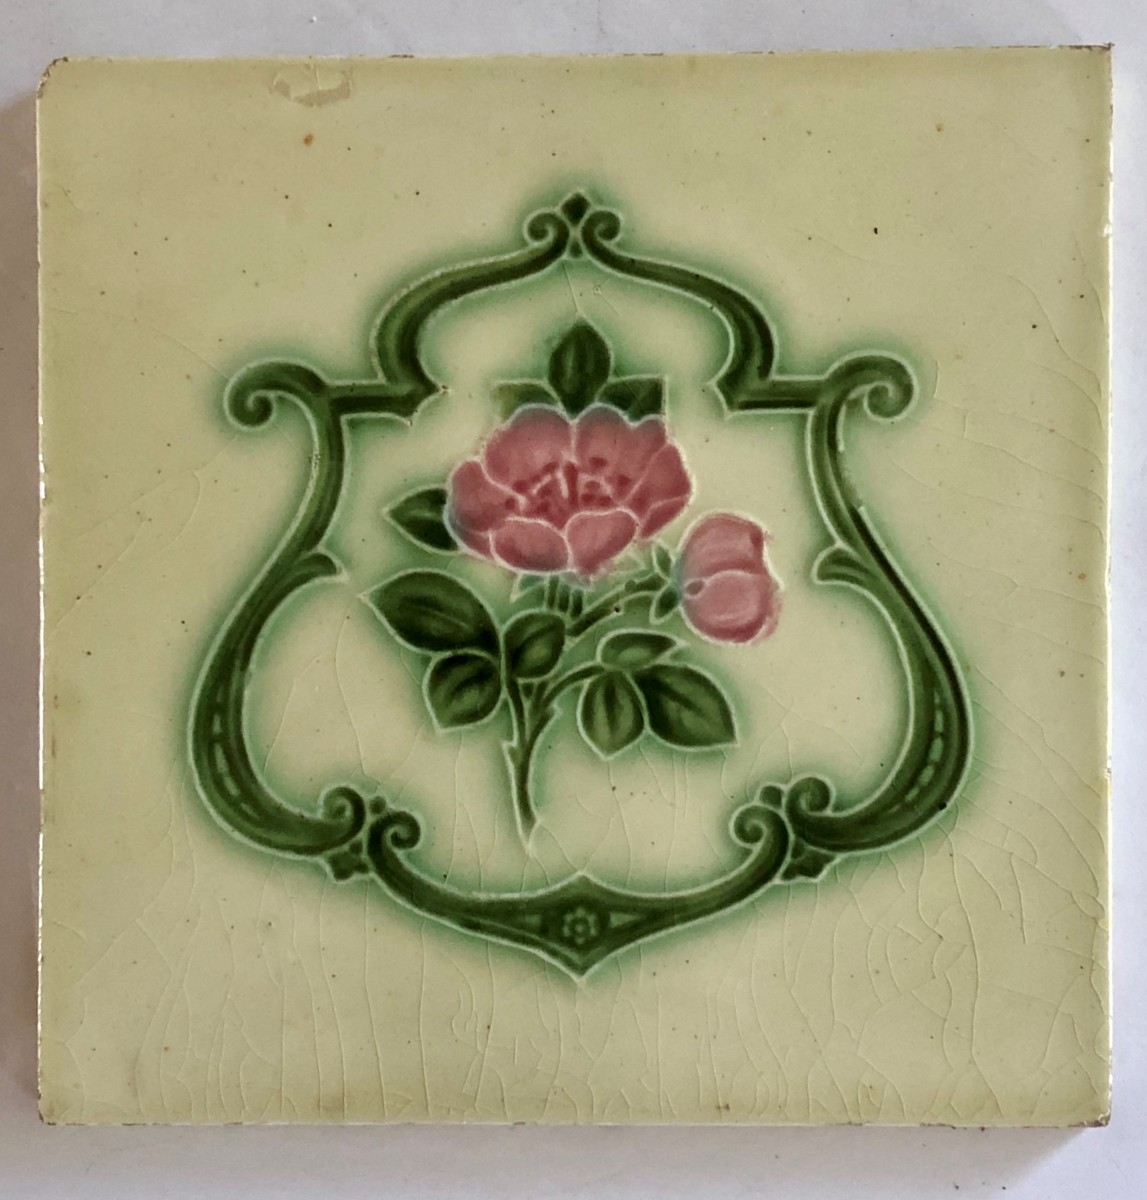 A 6- by 6-inch Art Nouveau ceramic by T. A. Simpson & Co. in England tile came with a smile and a story to share.